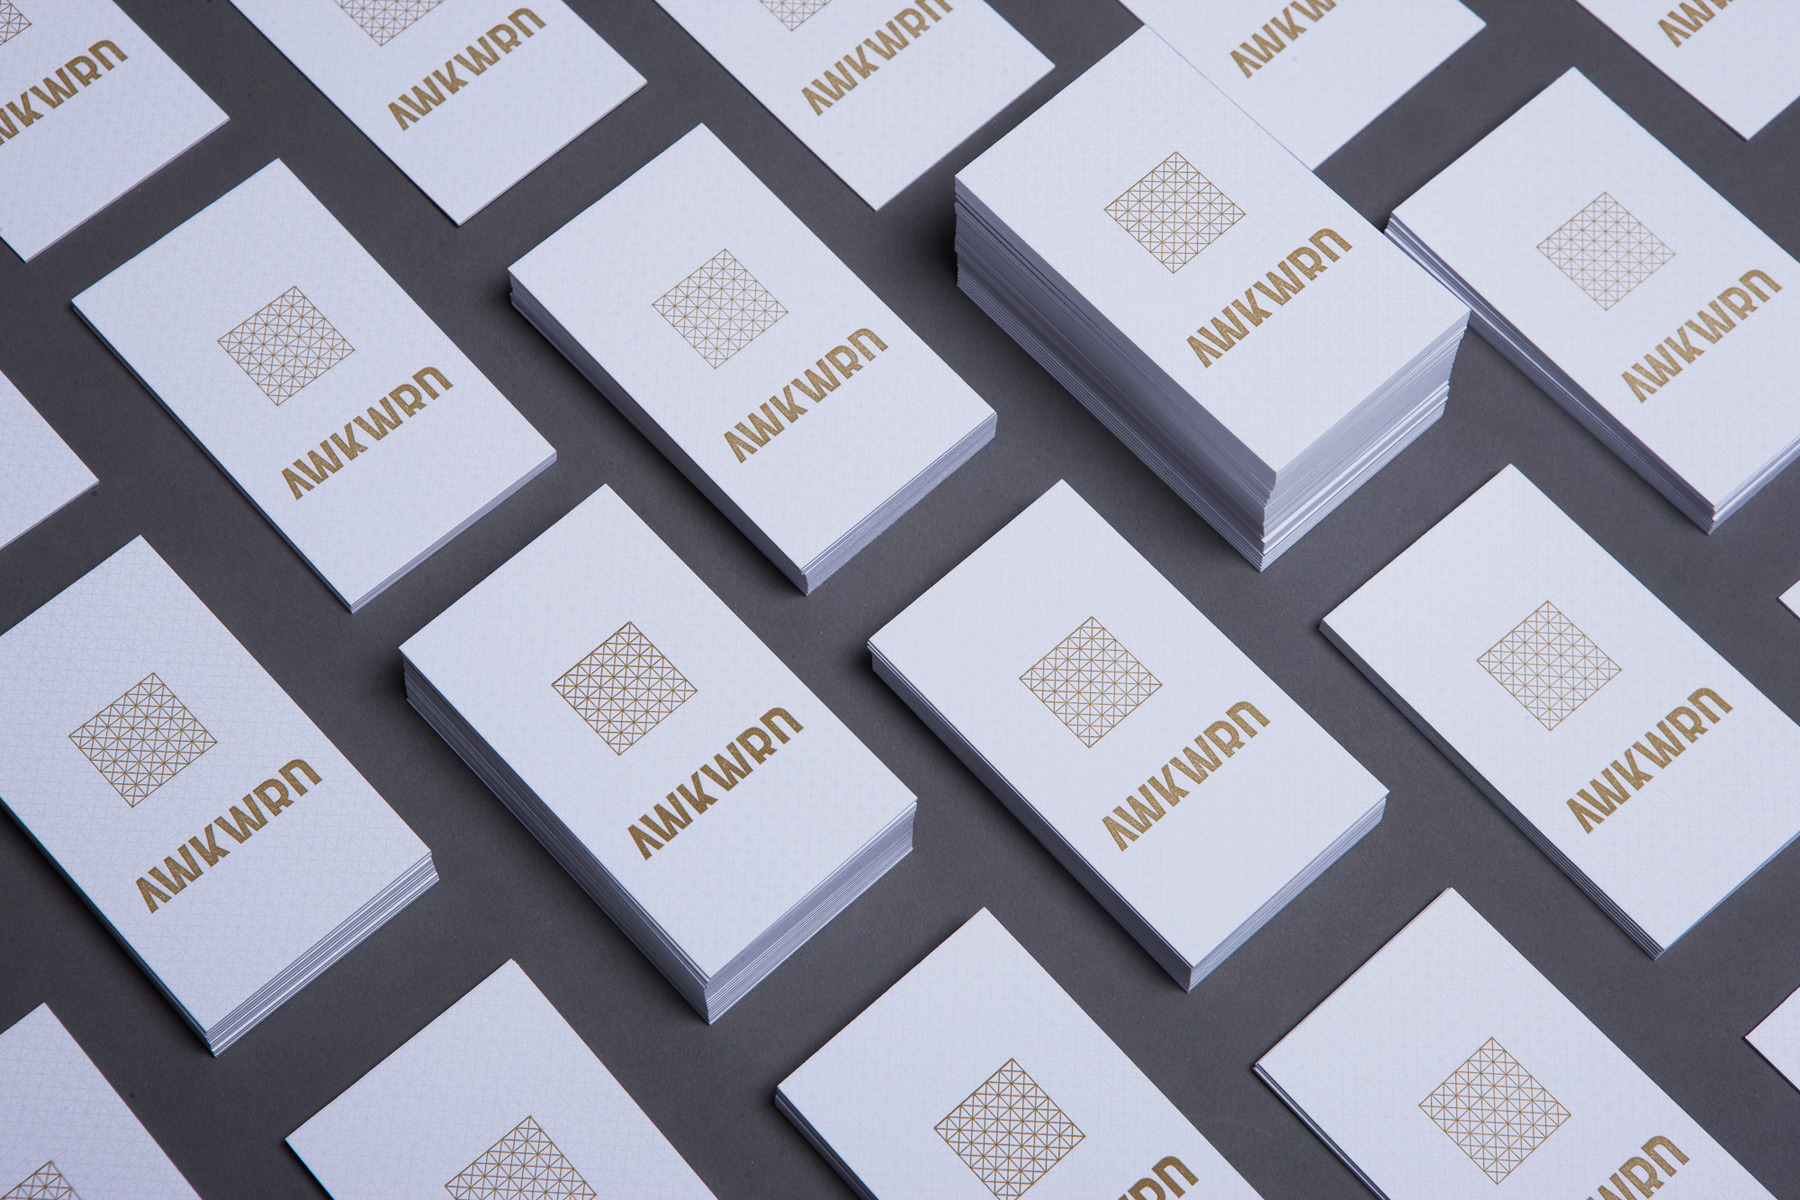 Awkwrd — Berger & Föhr — Design & Art Direction